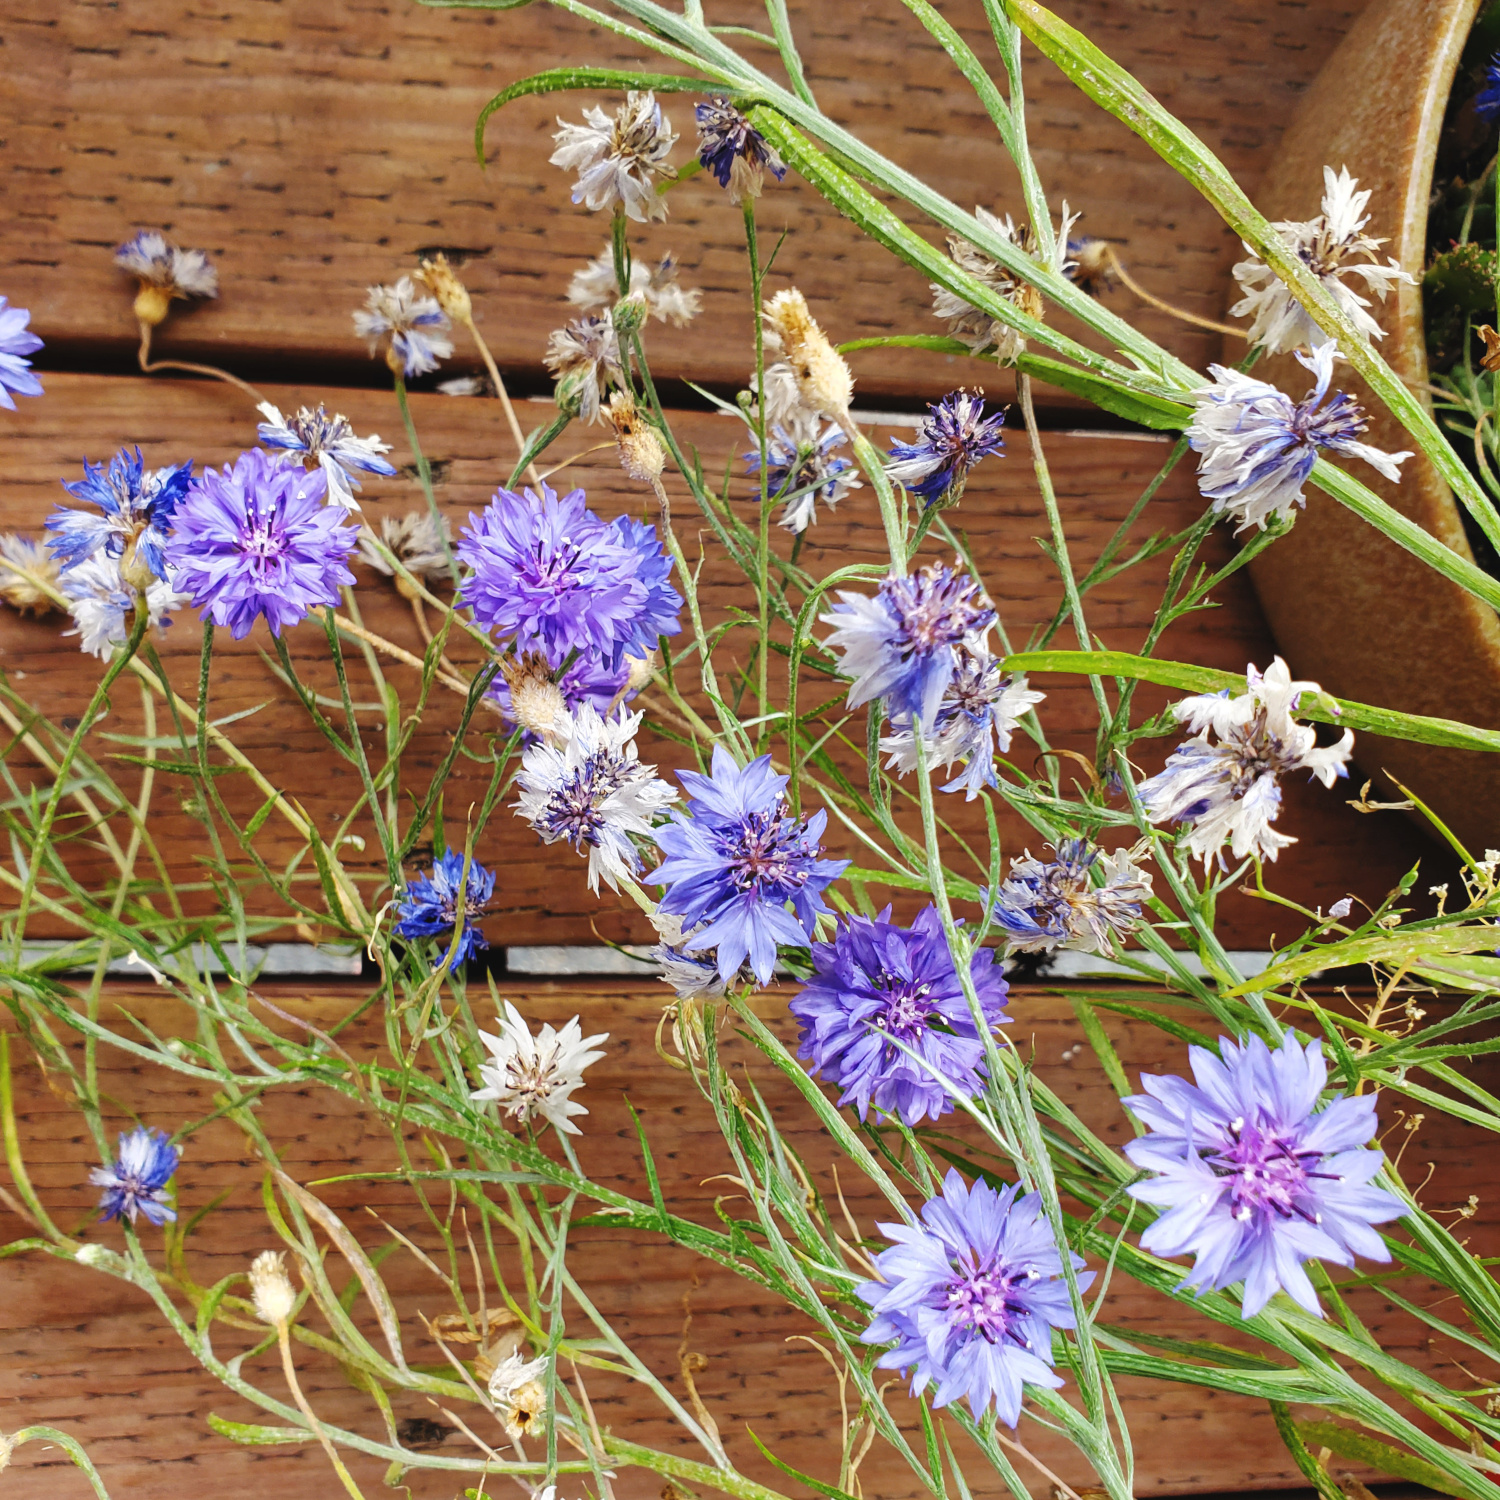 The cornflowers won't stop growing over and over